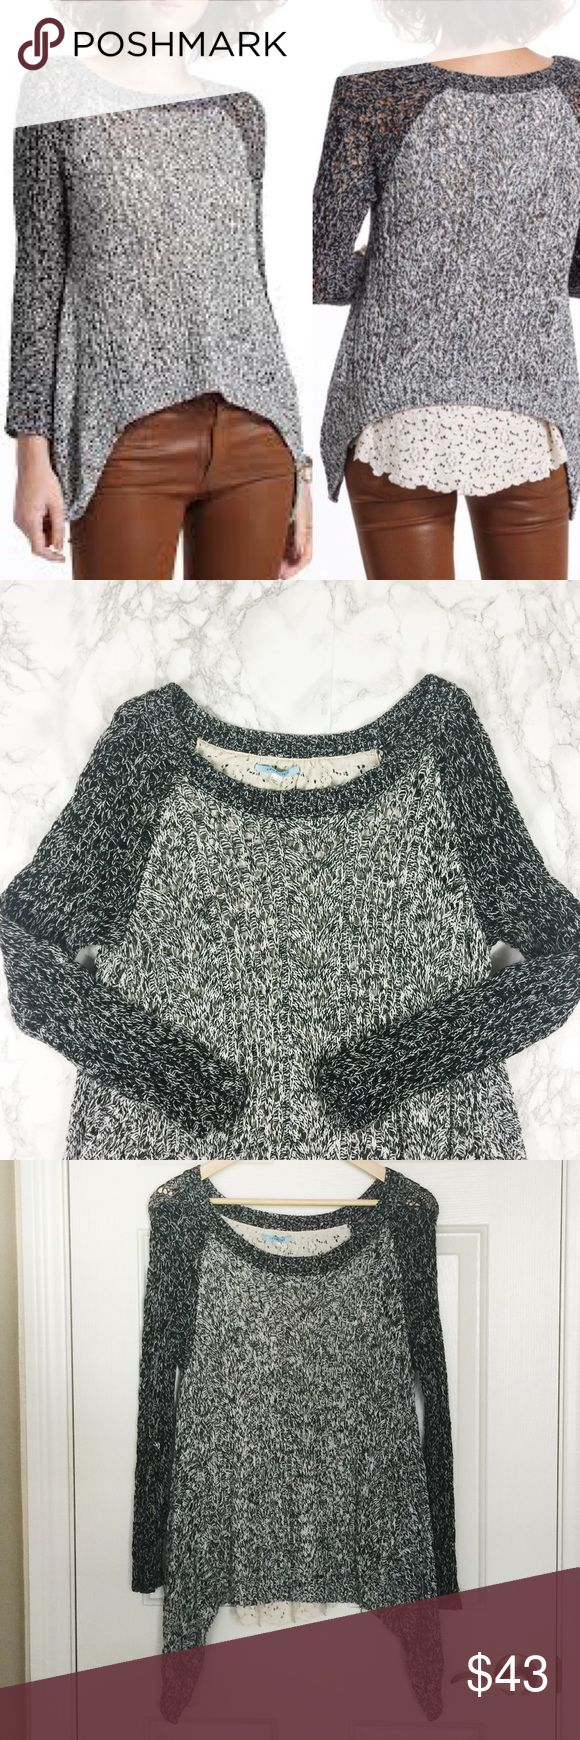 Anthropologie Leifnotes Dipped Lace Marled Sweater Grey sweater with dark grey sleeves. Back lined with lace, peeks out of bottom of sweater. Longer at sides. EUC. Anthropologie Sweaters